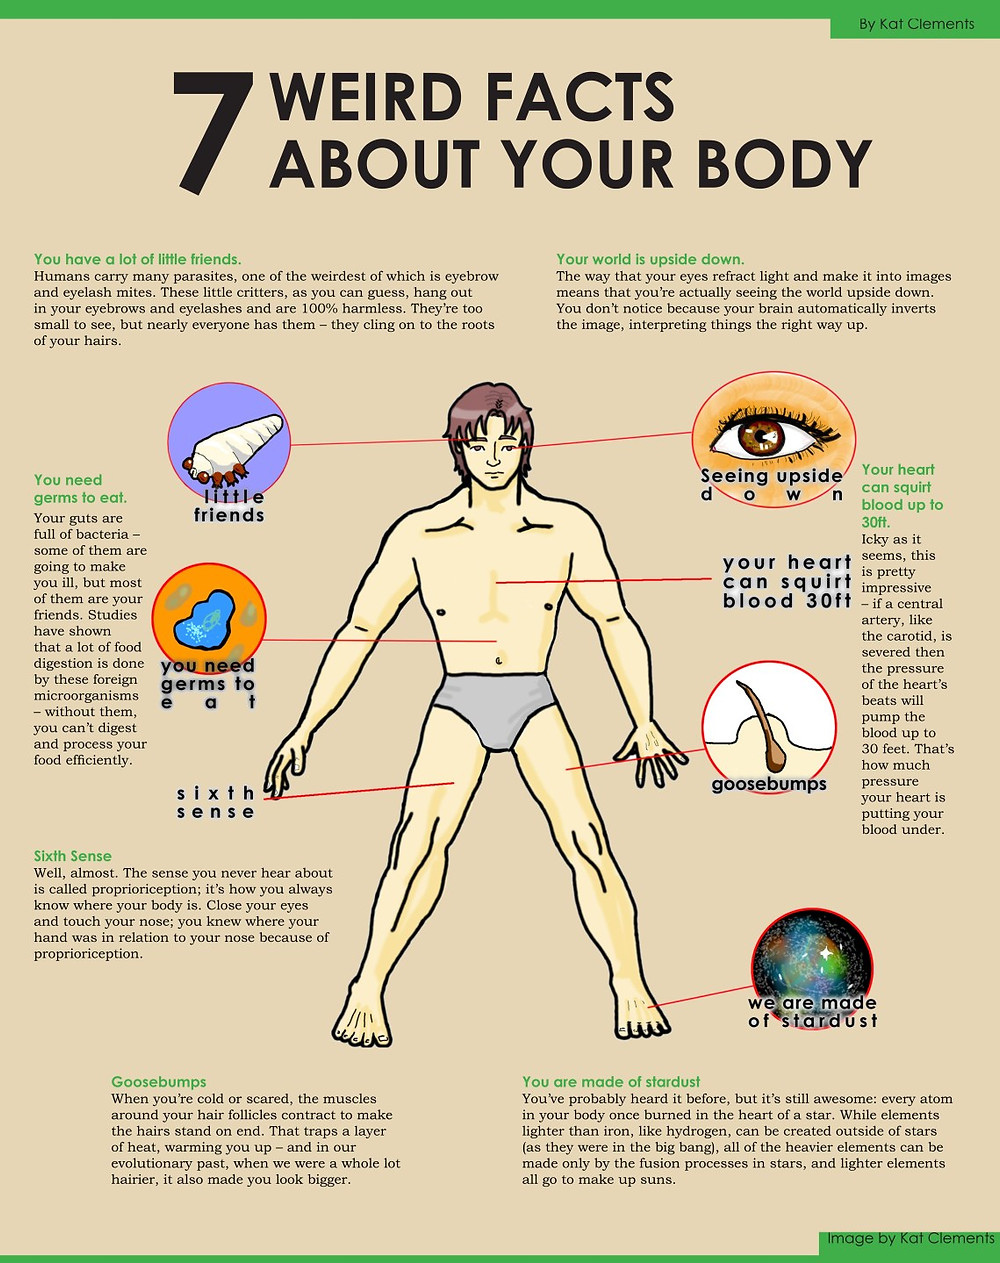 7 weird facts about your body